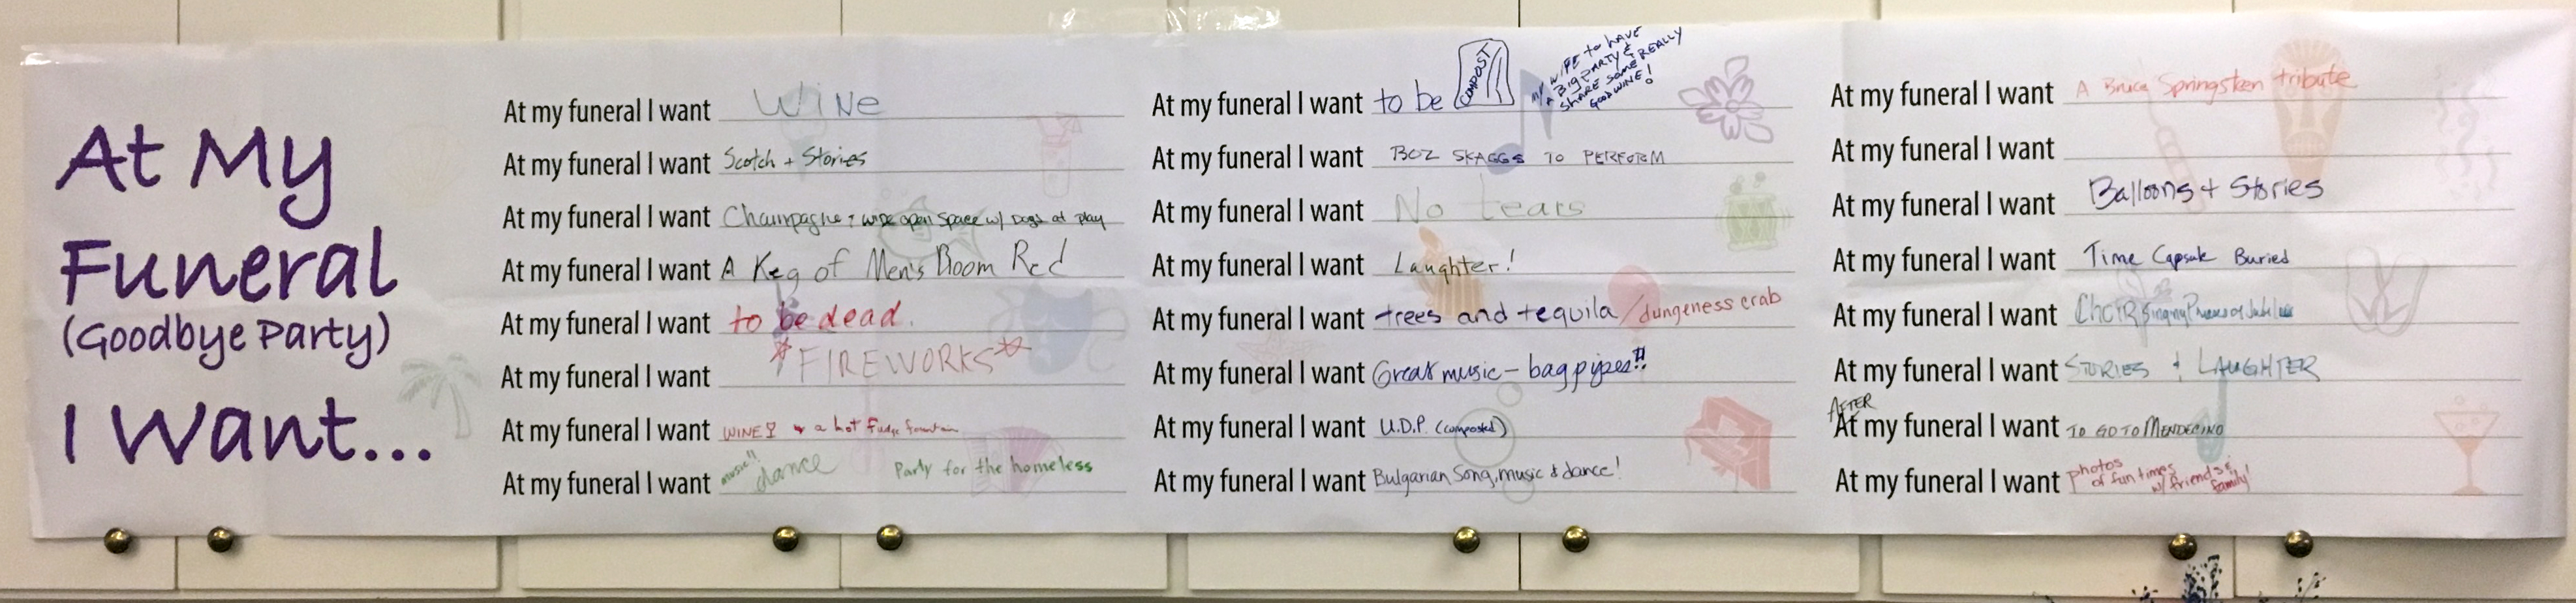 At my funeral I want______________.